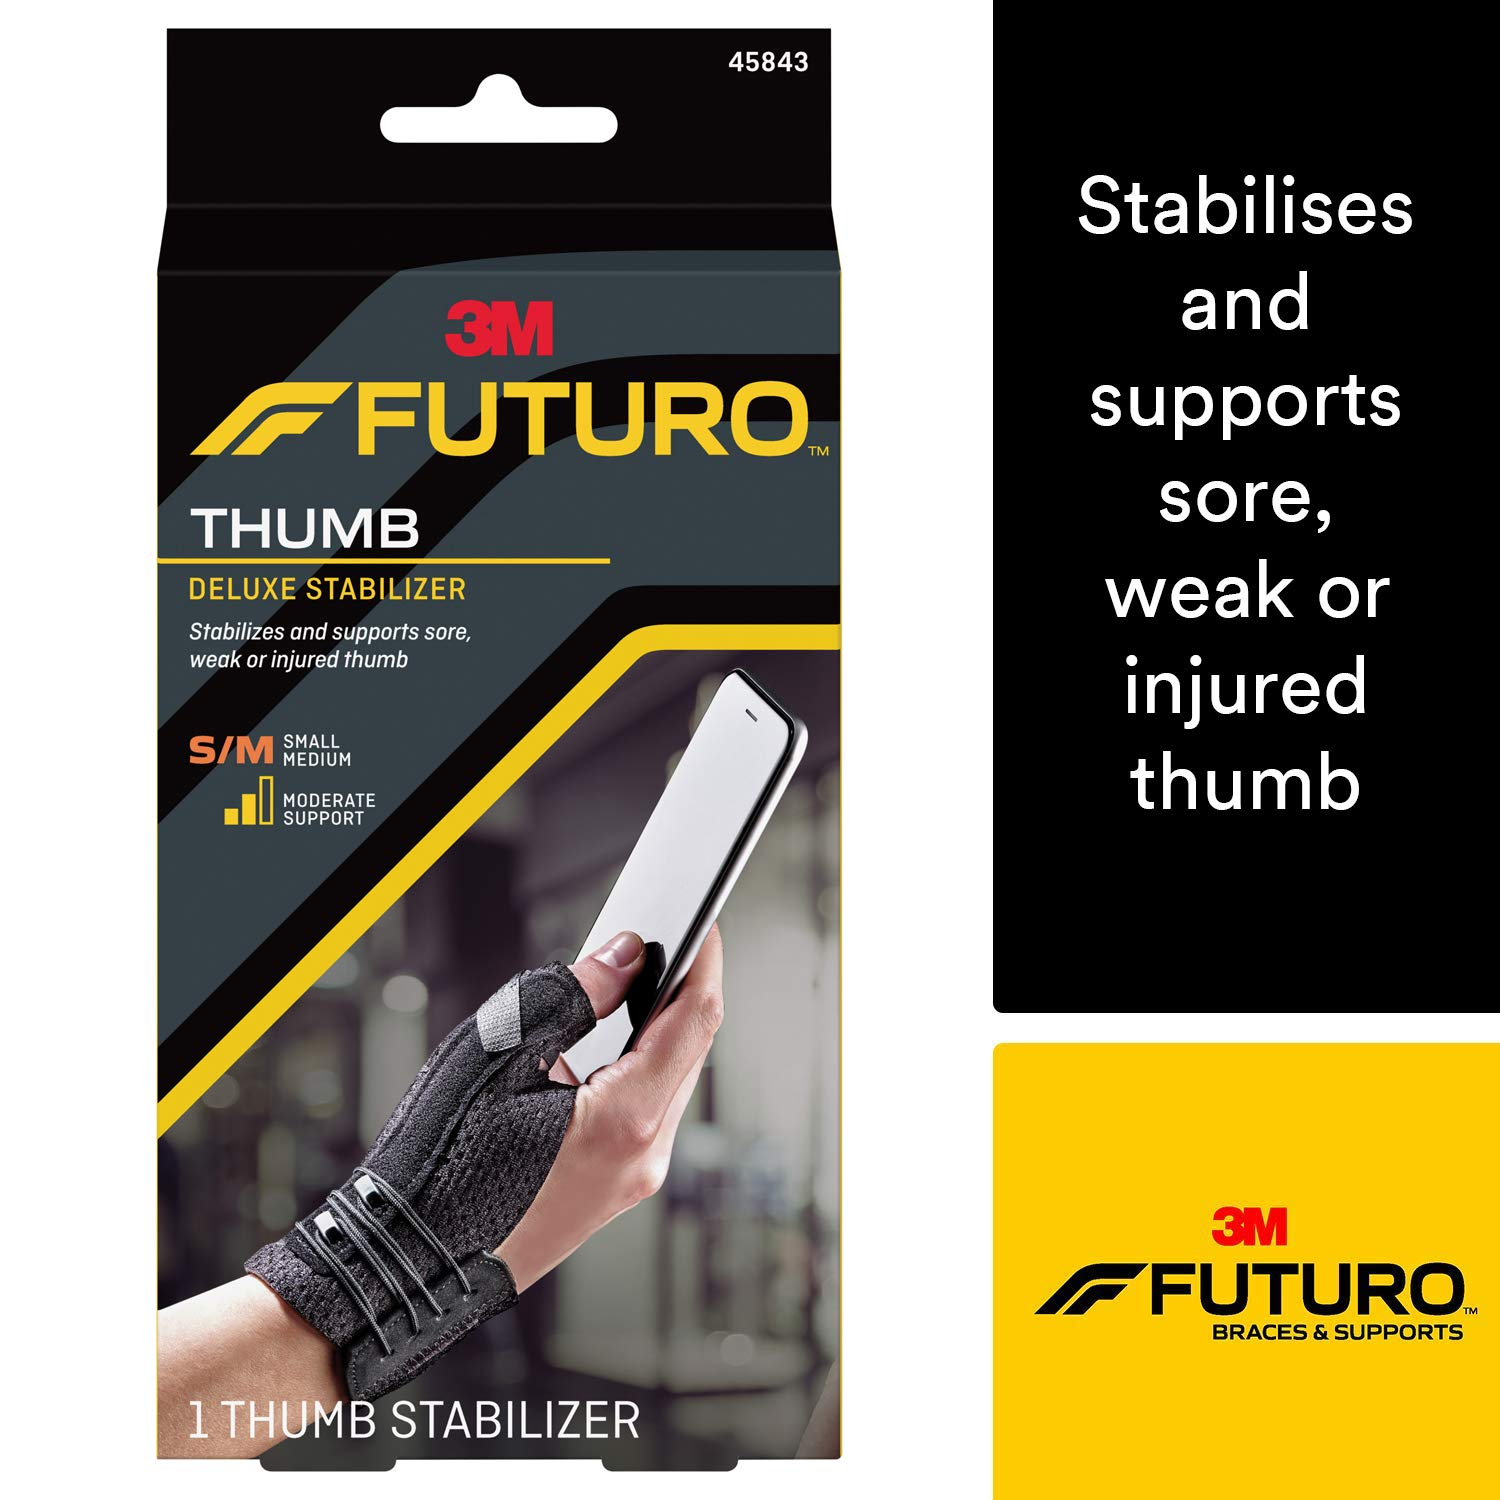 Futuro Deluxe Thumb Stabilizer, Improves Stability, Moderate Stabilizing Support, Large/X-Large, Black